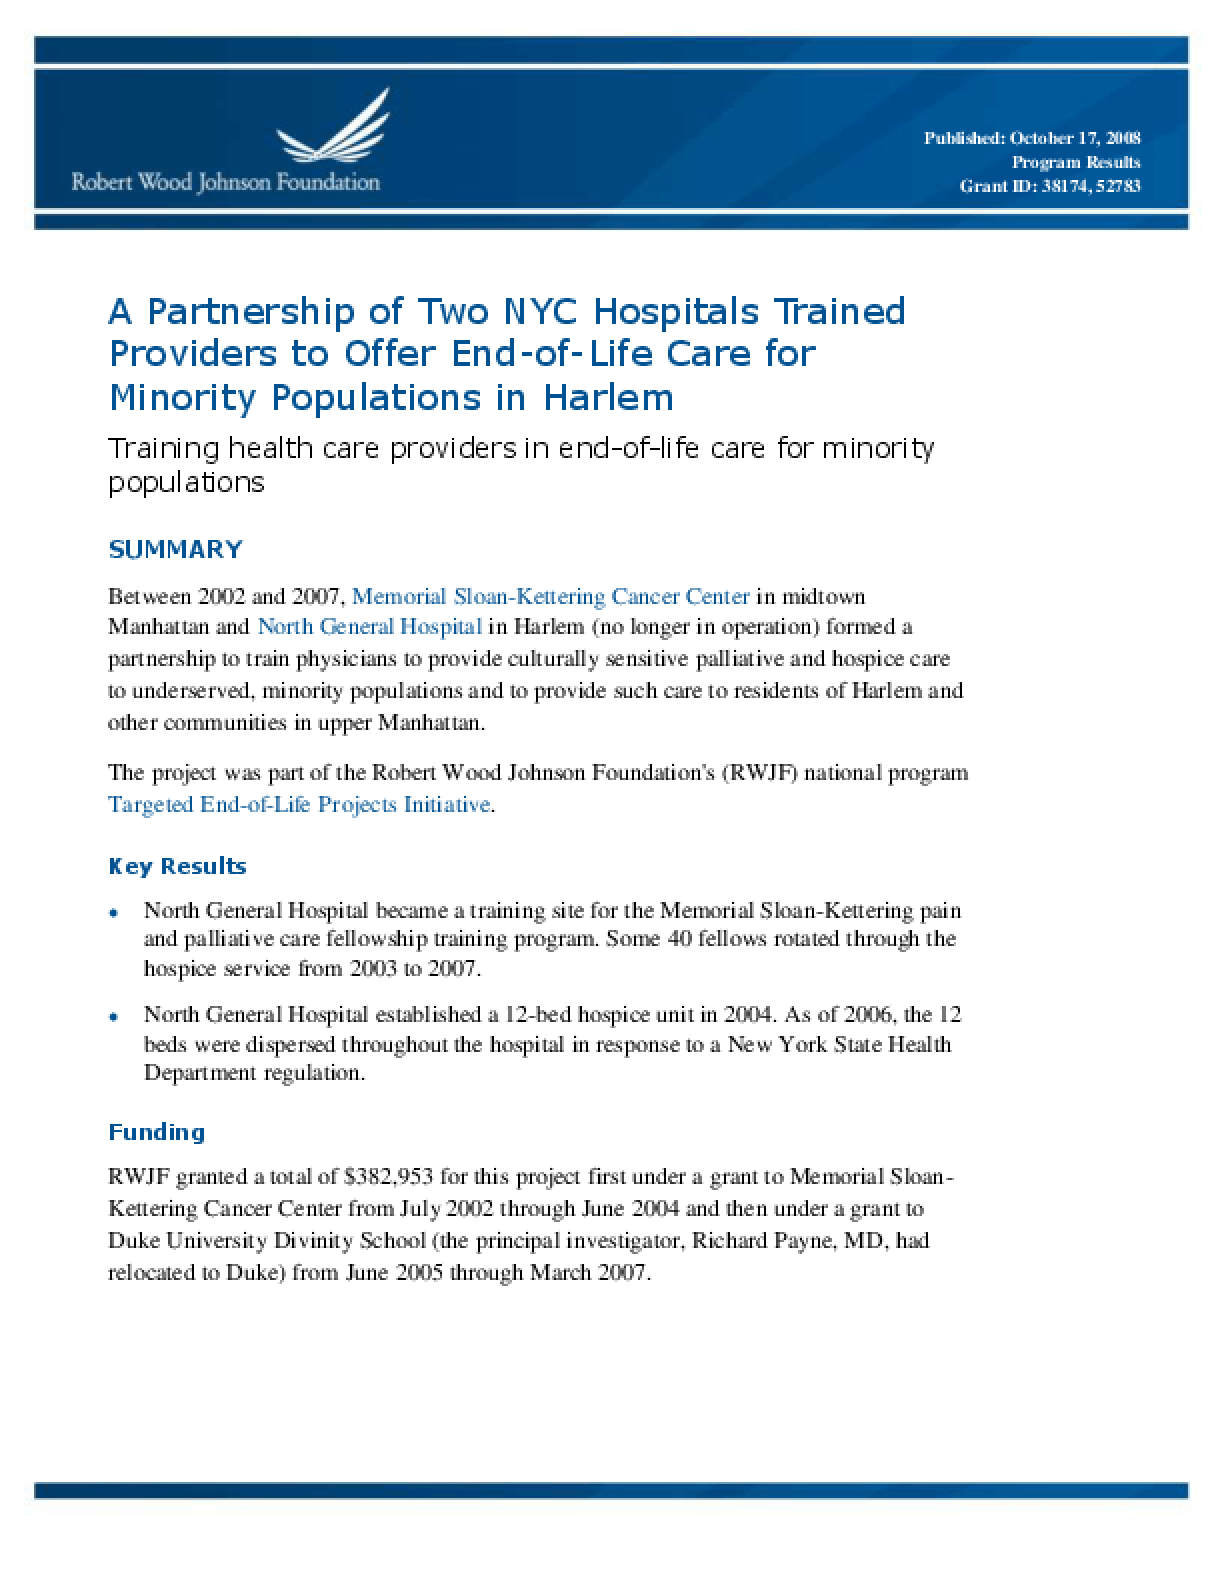 A Partnership of Two NYC Hospitals Trained Providers to Offer End-of-Life Care for Minority Populations in Harlem